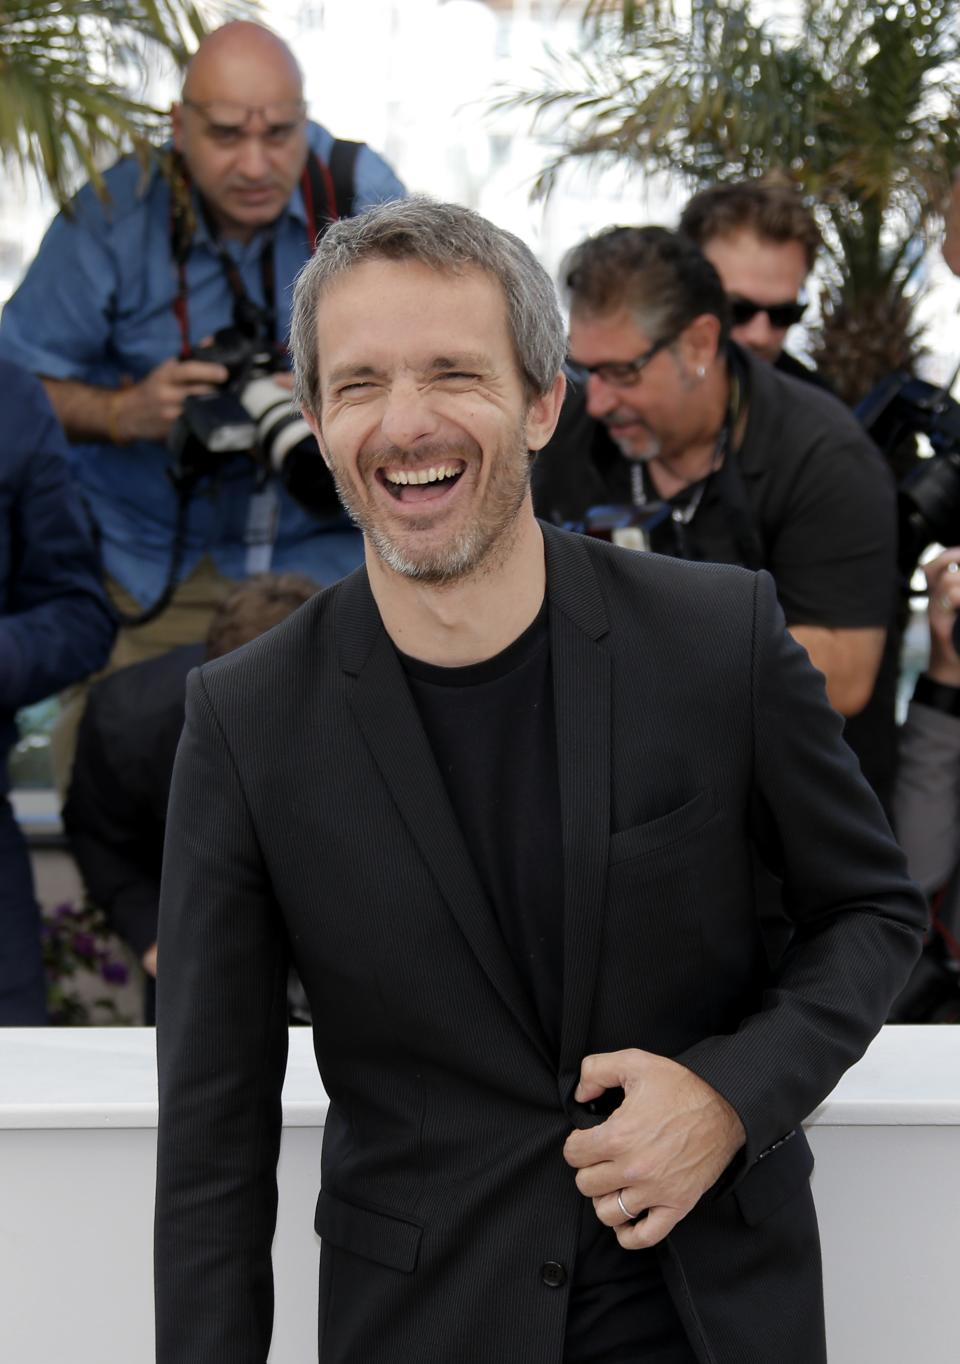 Director Jerome Salle poses for photographers during a photo call for the film Zulu at the 66th international film festival, in Cannes, southern France, Sunday, May 26, 2013. (AP Photo/Lionel Cironneau)